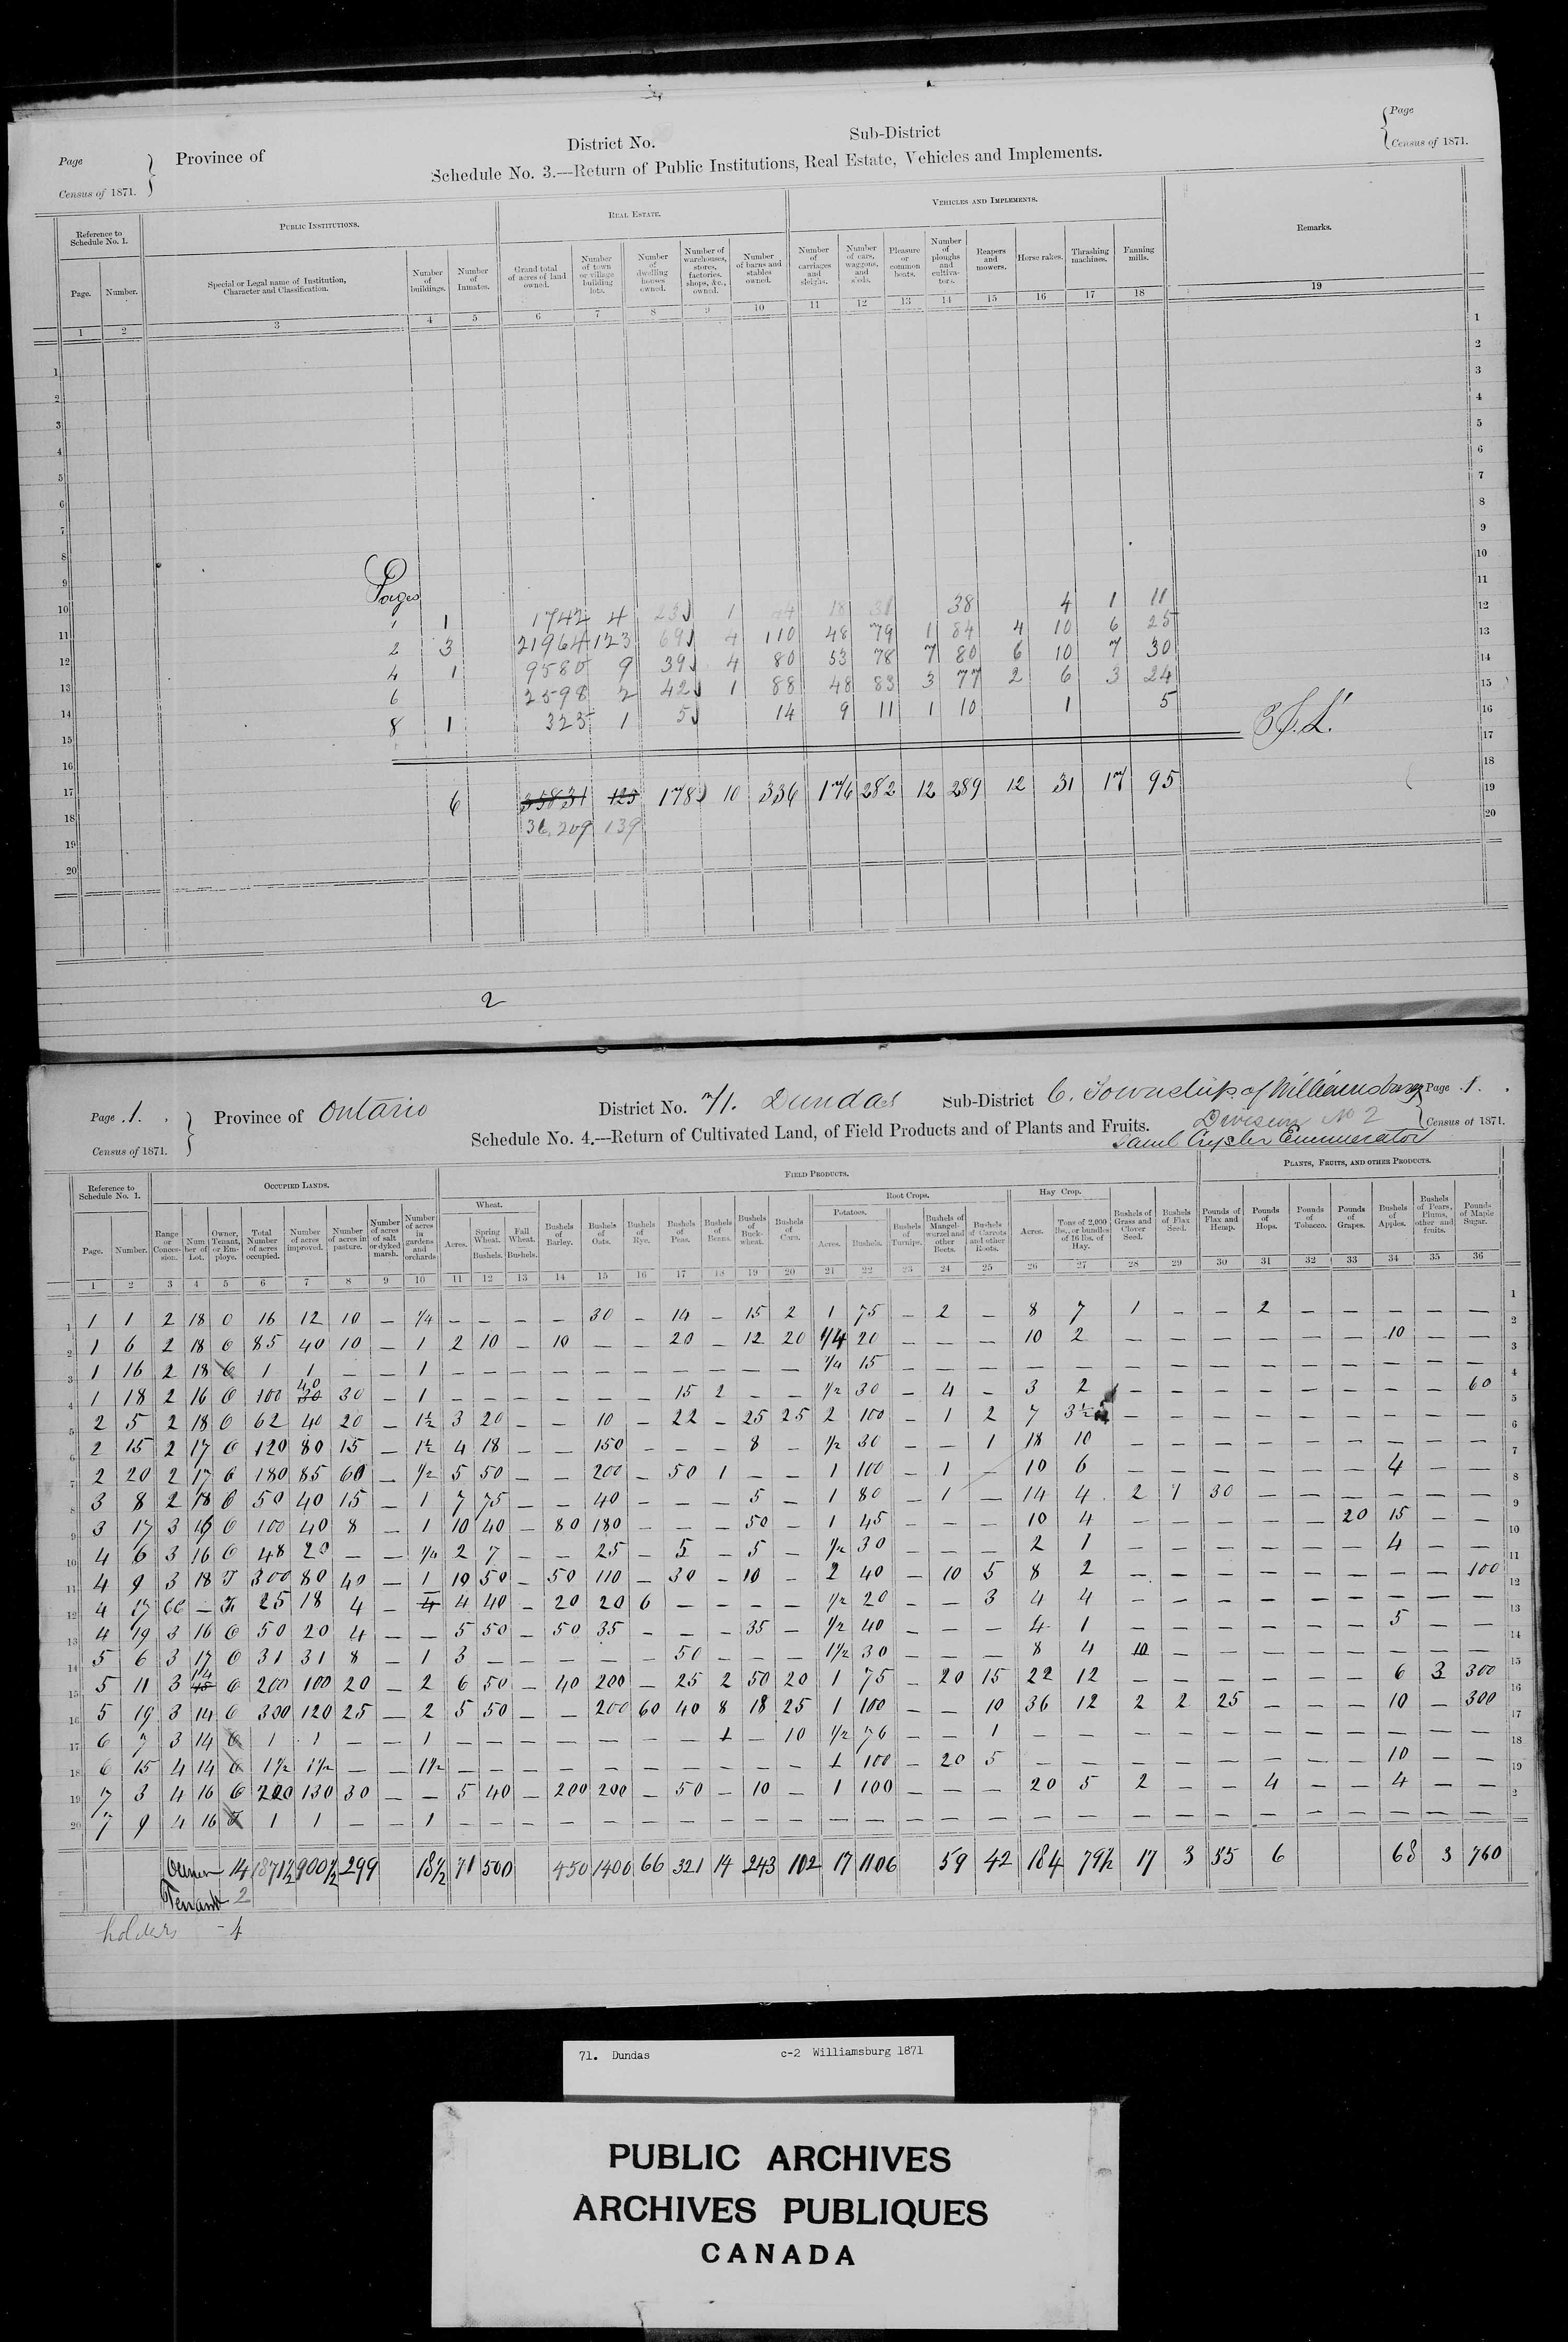 Title: Census of Canada, 1871 - Mikan Number: 142105 - Microform: c-10006